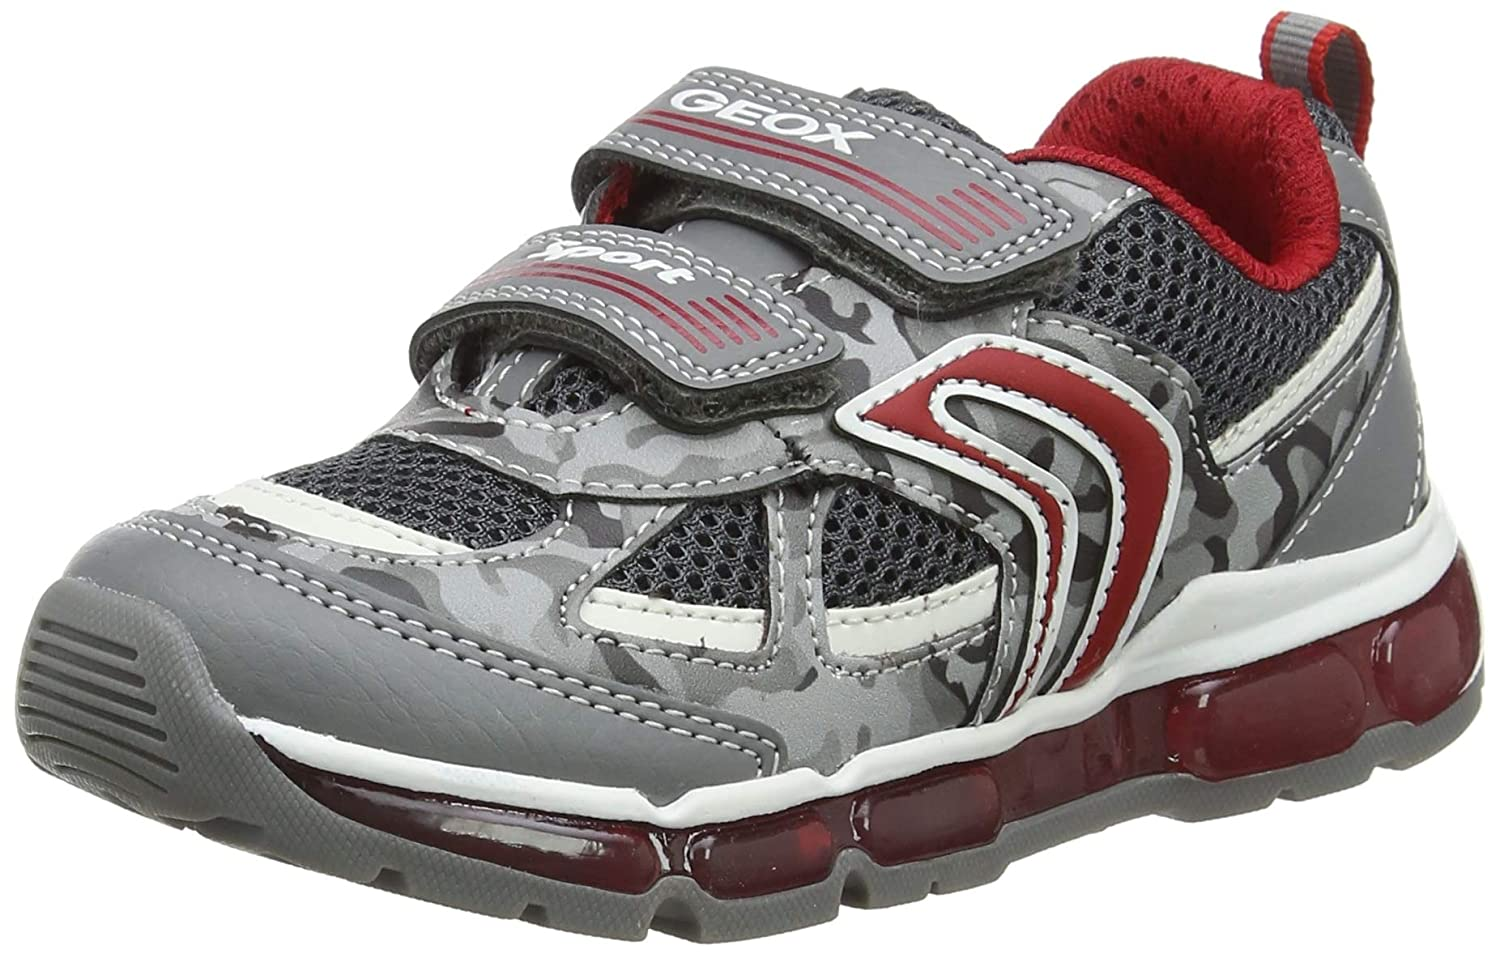 bba15c7448 Geox Boys Android C Light-Up Sneaker Sneaker: Amazon.ca: Shoes & Handbags